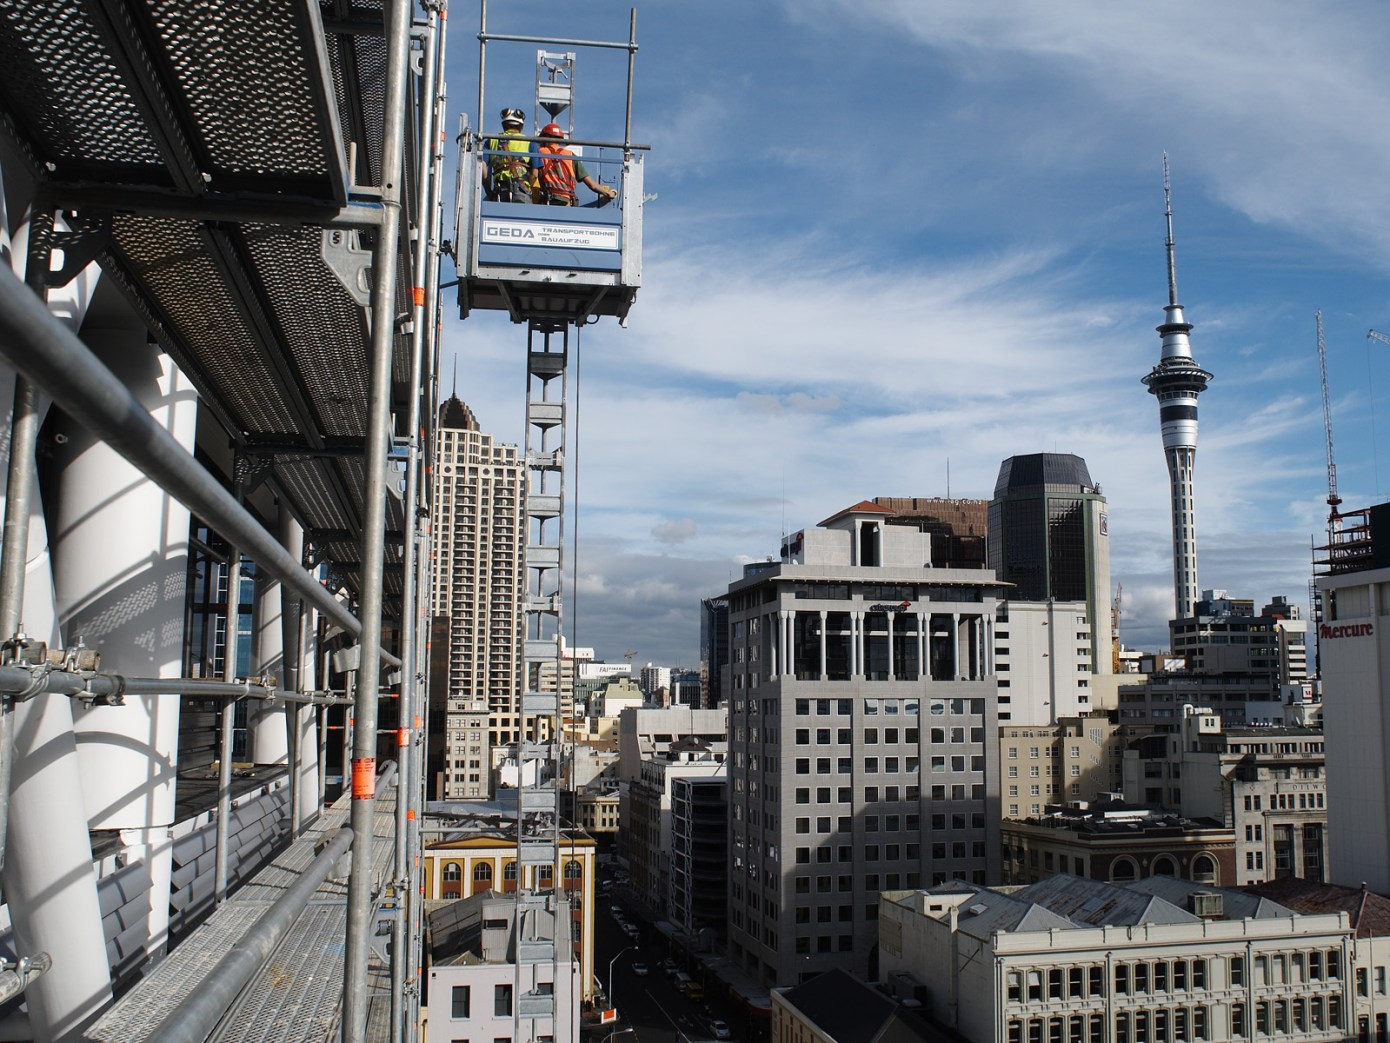 Scaffold hoist lifting people and materials overlooking Auckland's Sky Tower